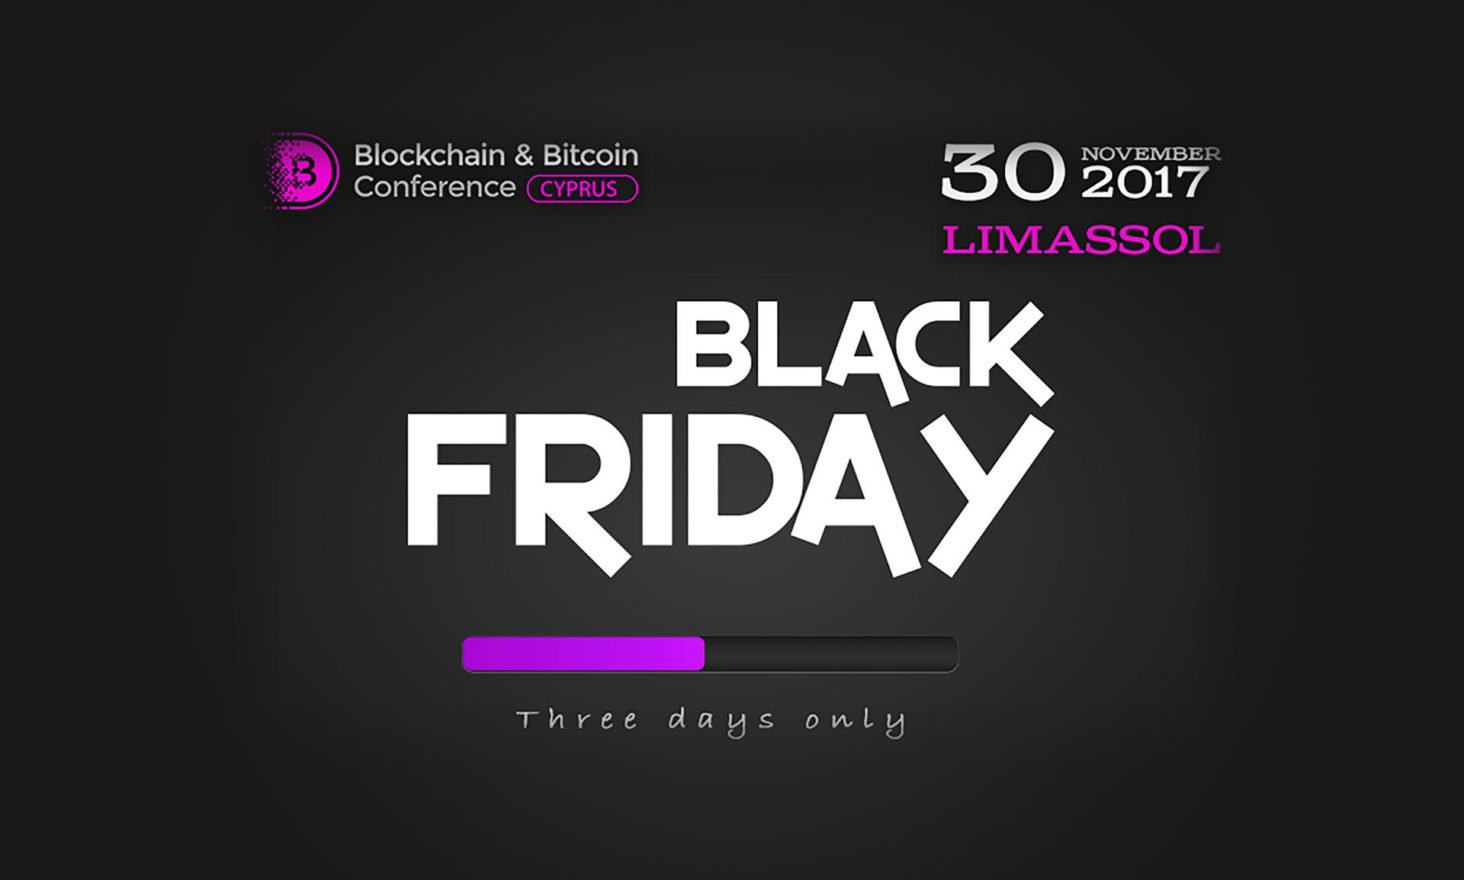 Black Friday Promotion: +1 Free Ticket to Blockchain & Bitcoin Conference Cyprus